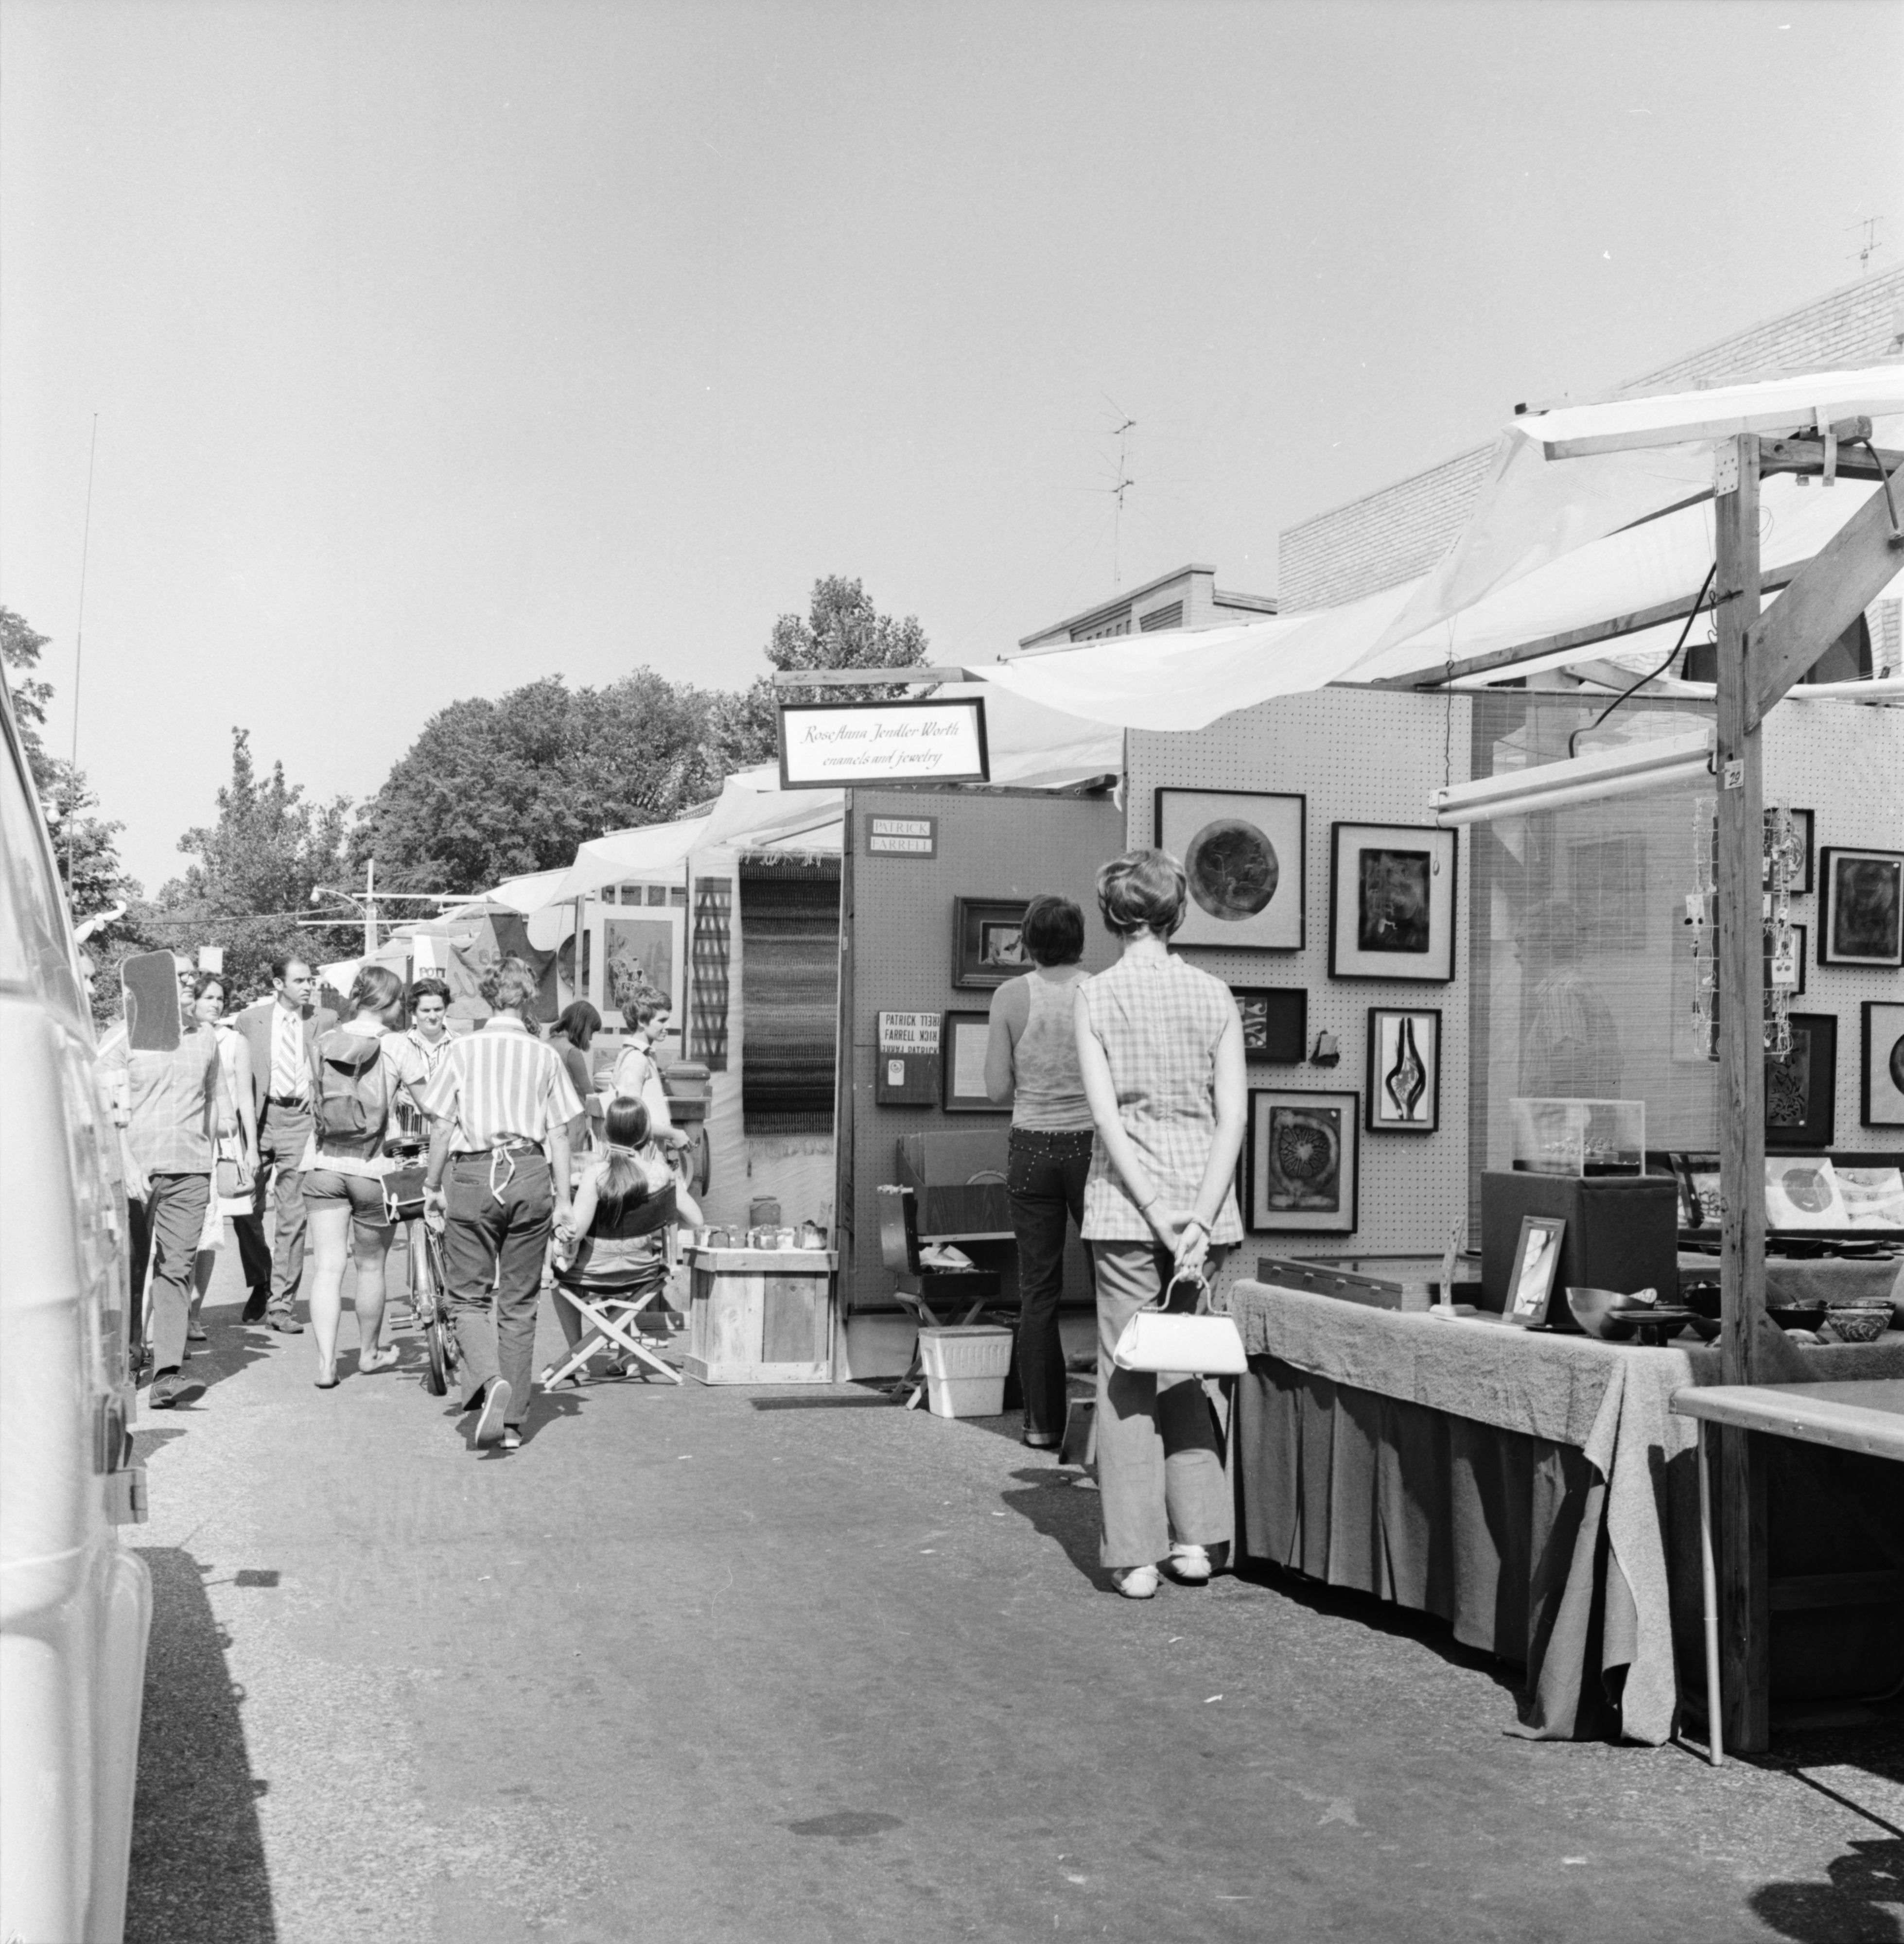 Along the street at the Ann Arbor Street Art Fair, July 1971 image